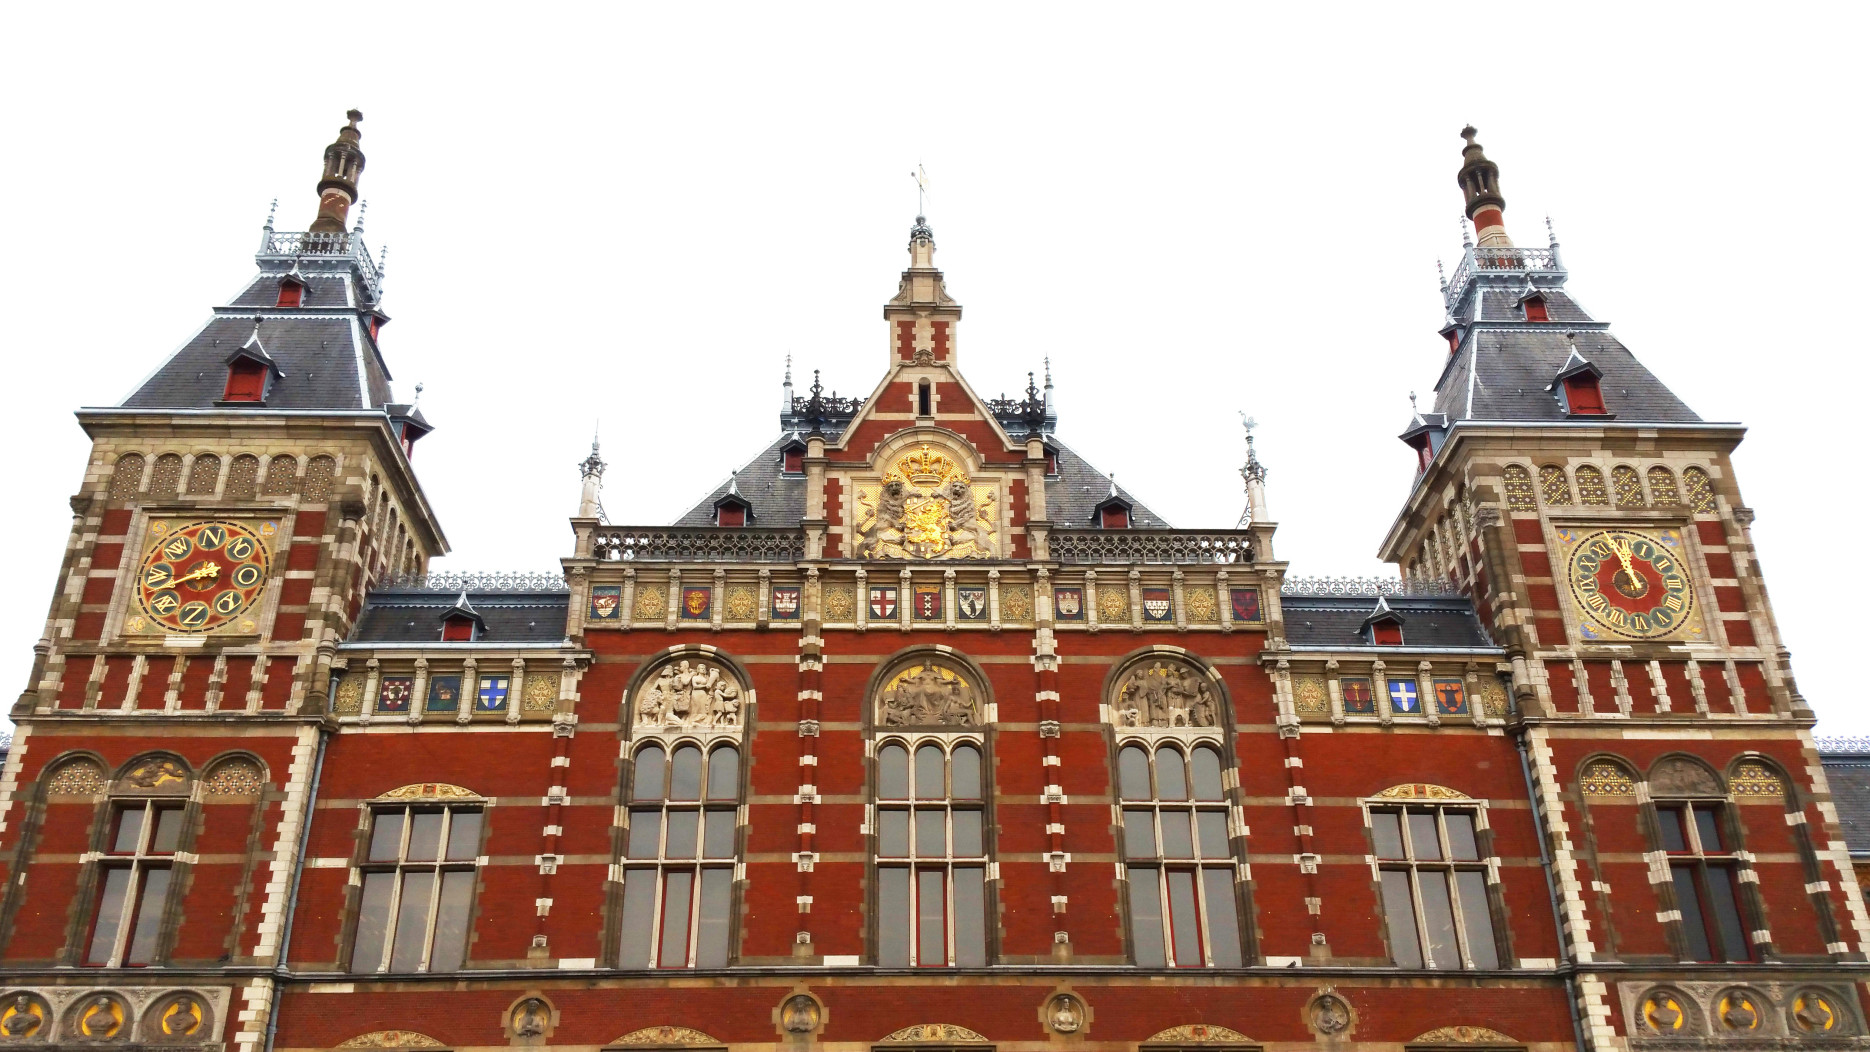 ONE DAY IN AMSTERDAM – PART I